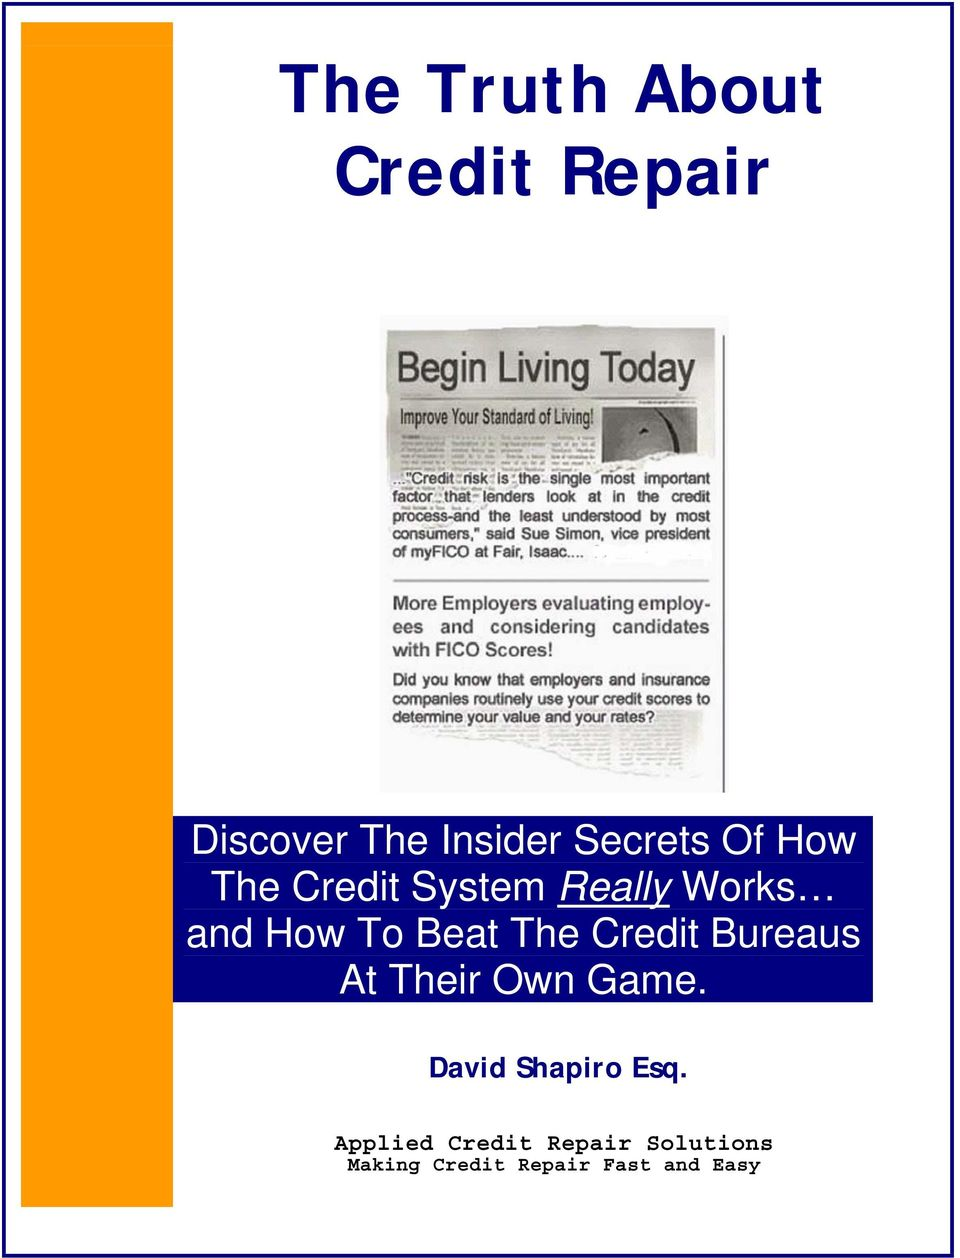 Credit Bureaus At Their Own Game. David Shapiro Esq.